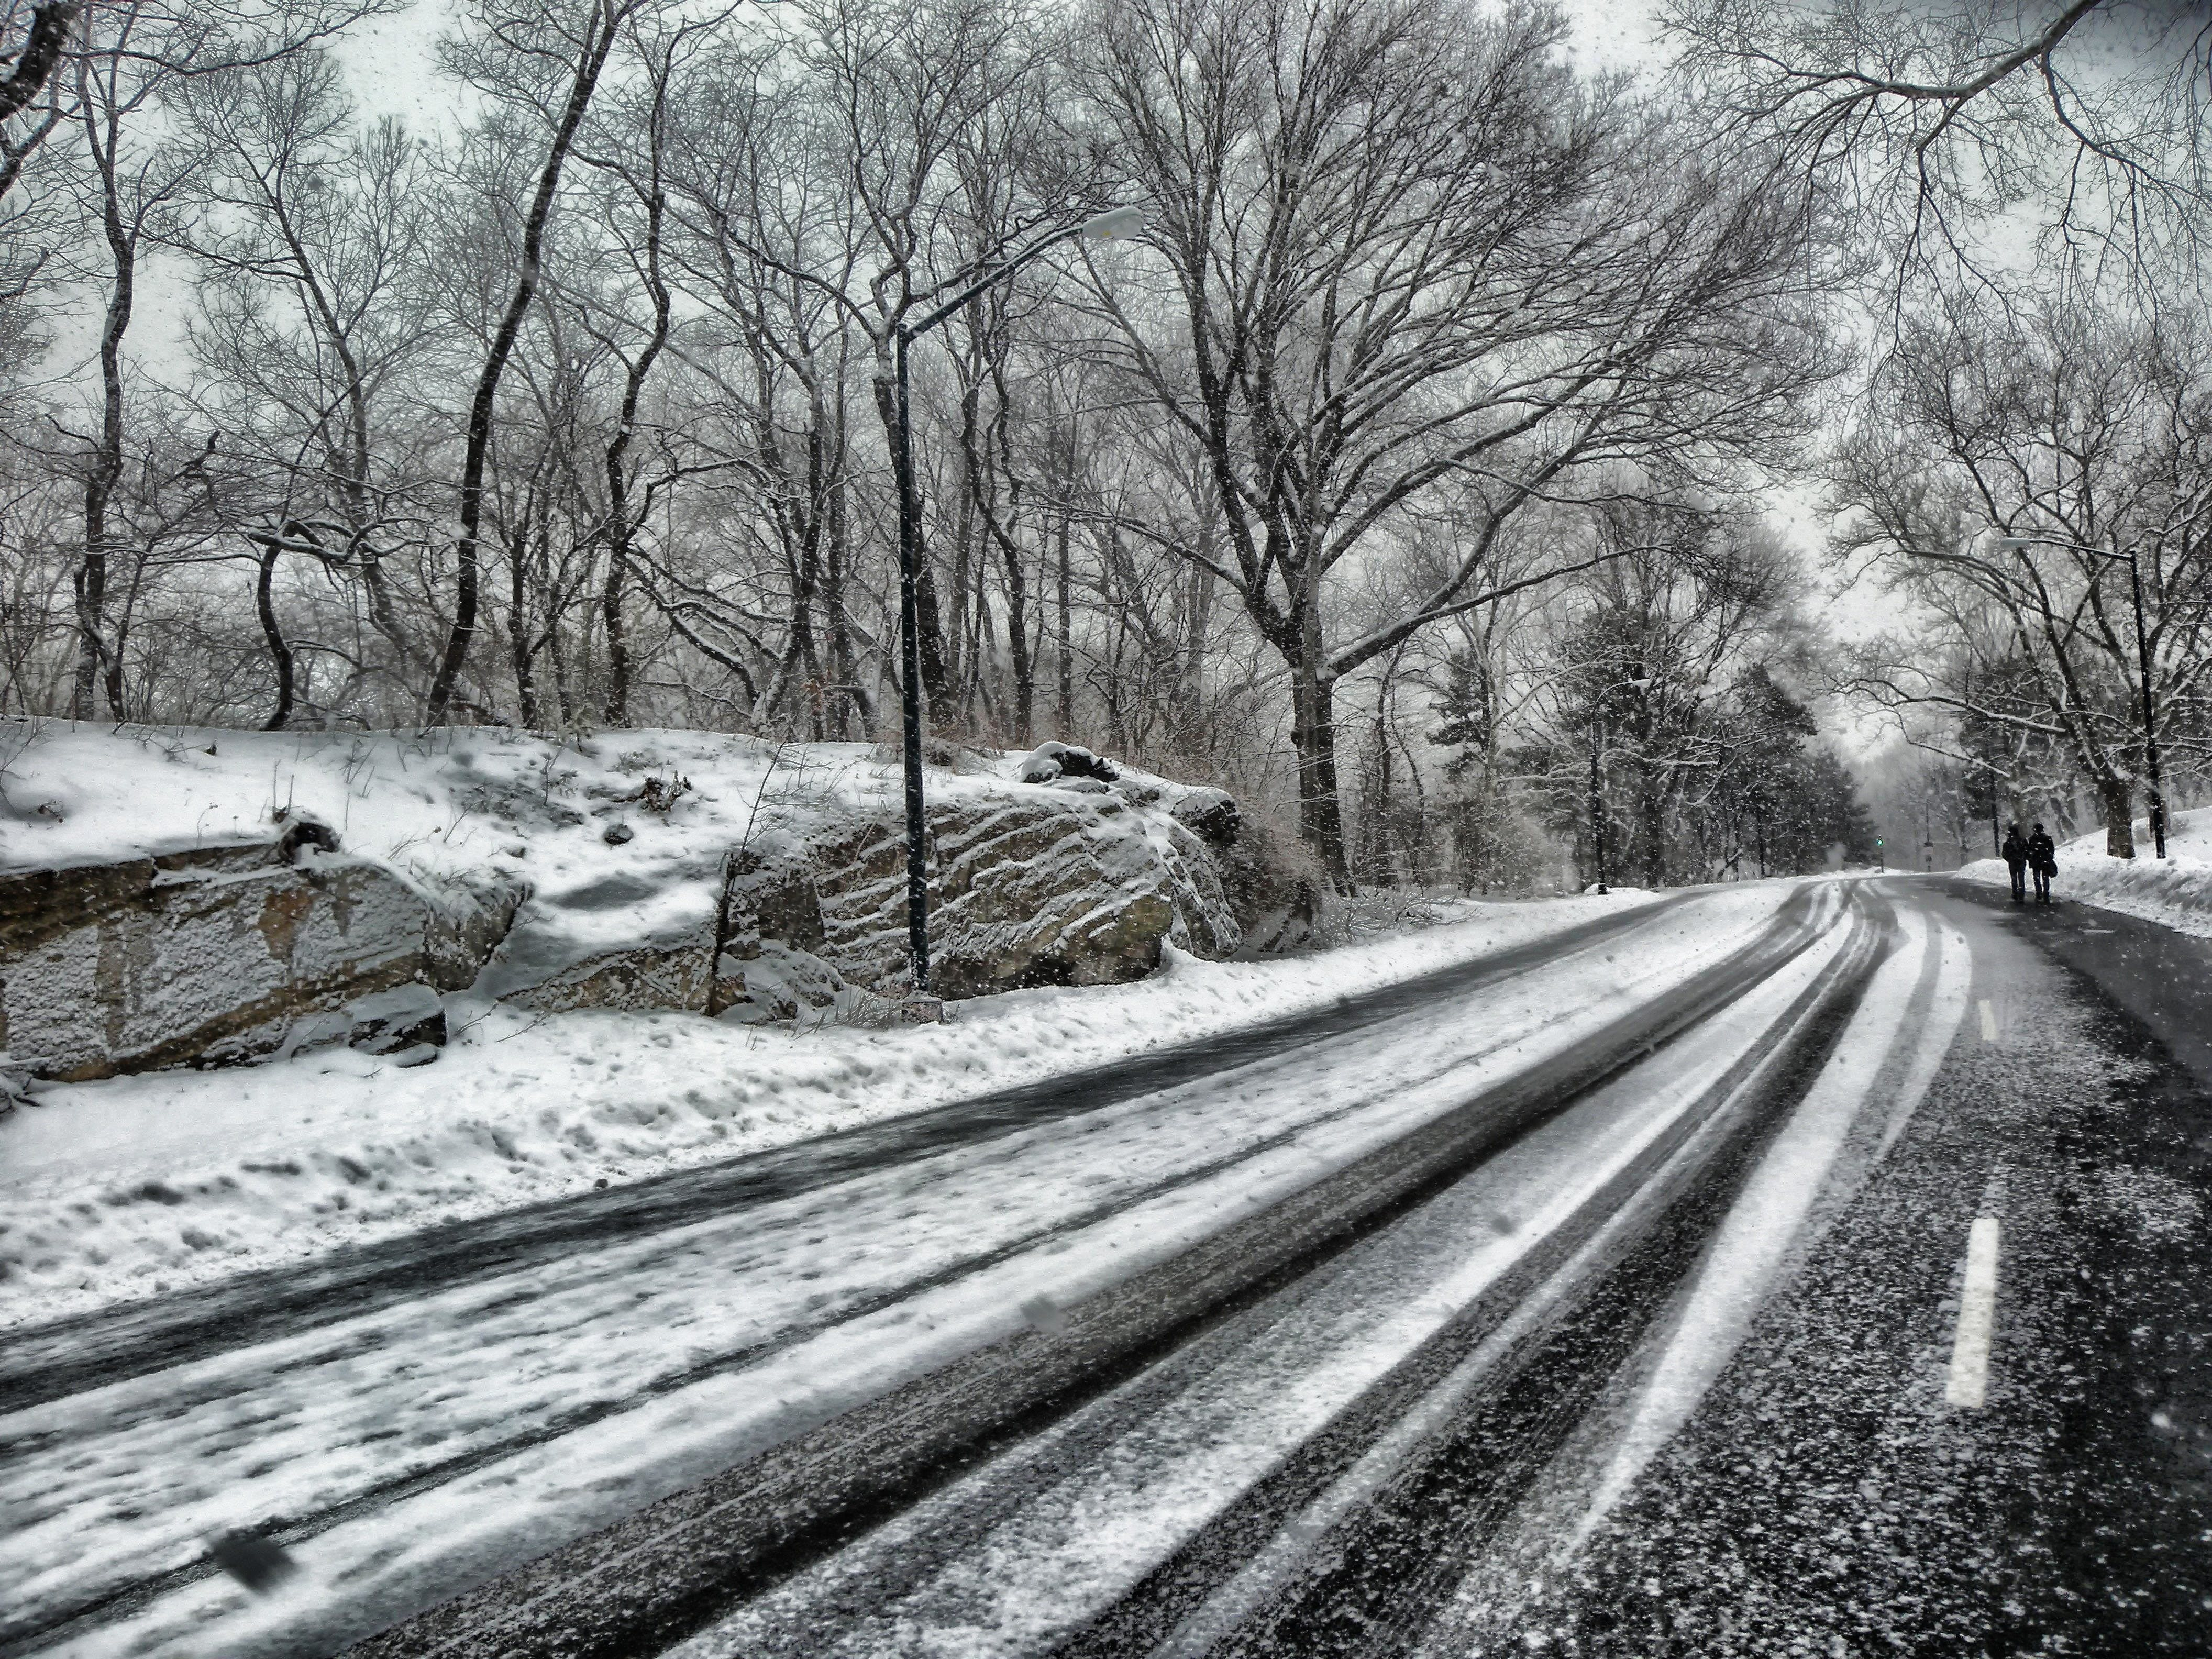 Snowy Road during Daytime